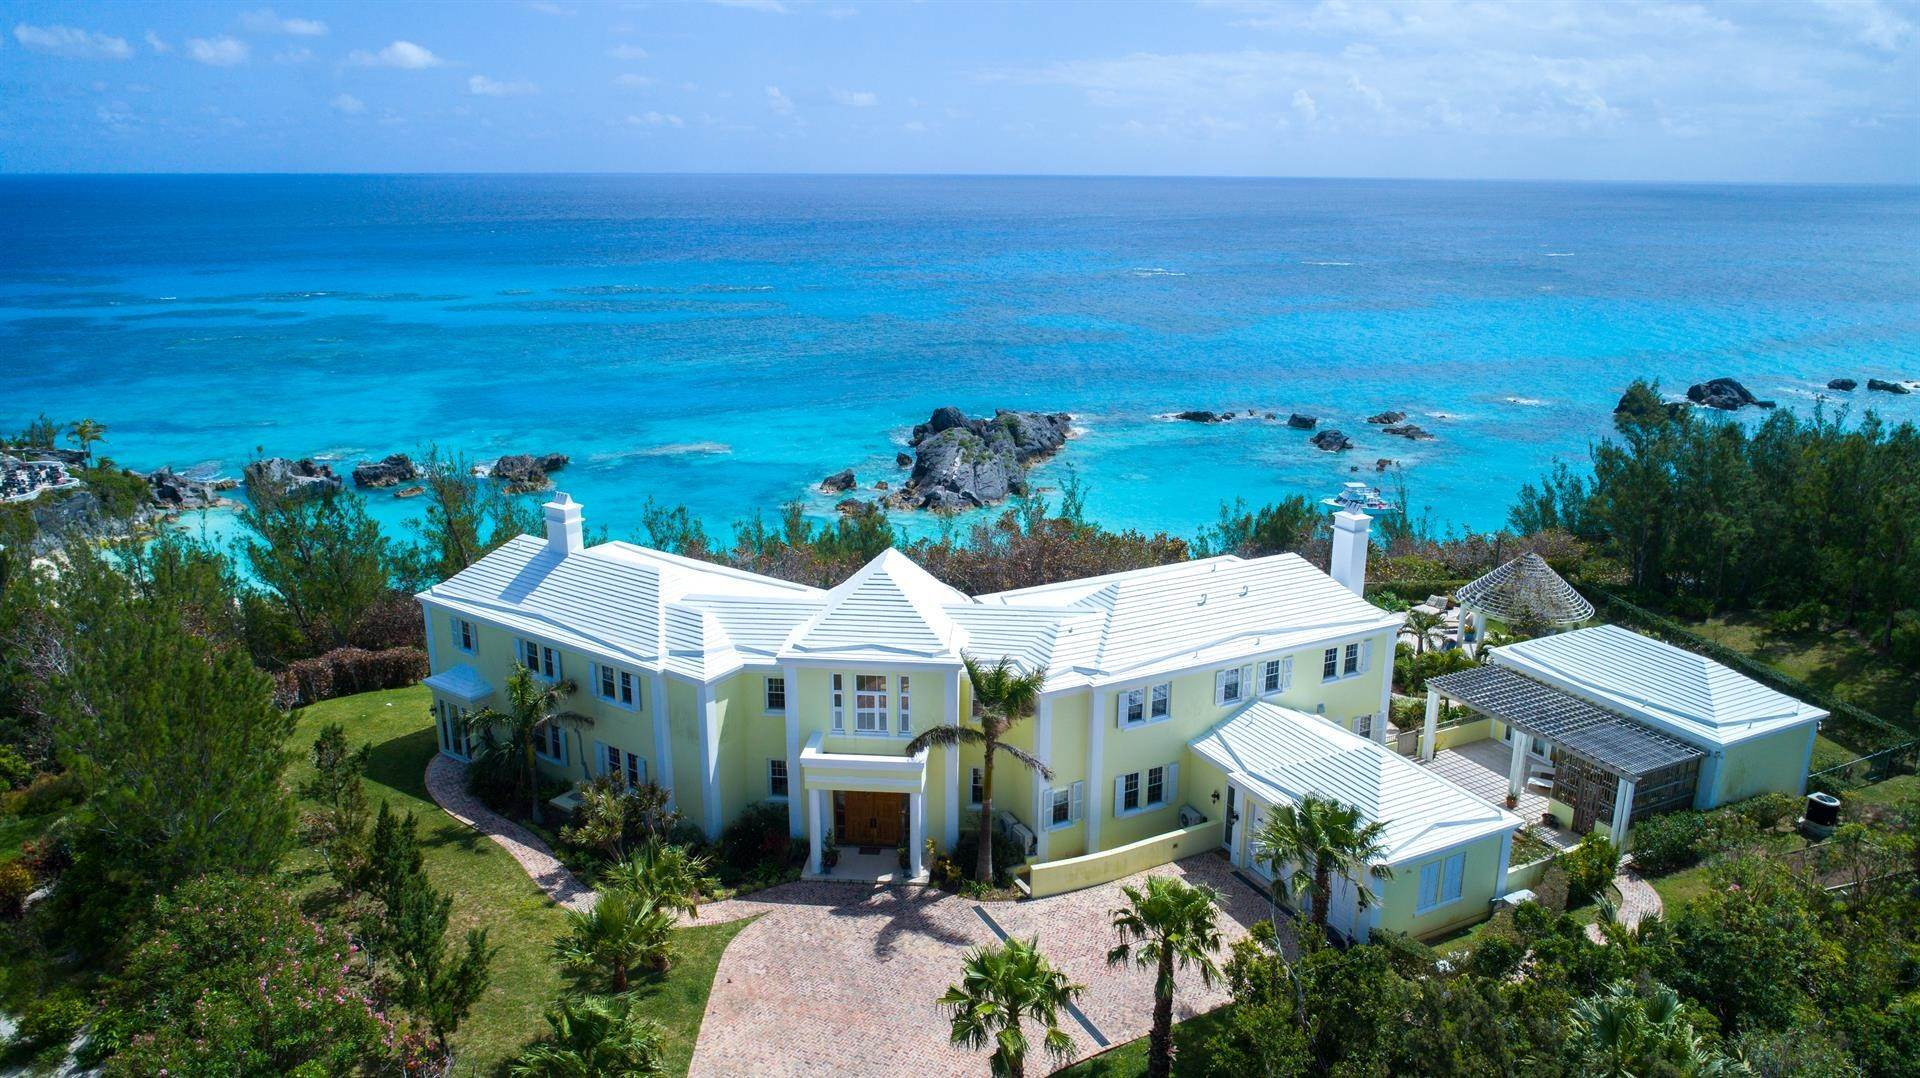 Single Family Homes için Satış at Duamber At The Fairmont Southampton Duamber At The Fairmont Southampton, 119 Harbour View Drive,Bermuda – Sinclair Realty